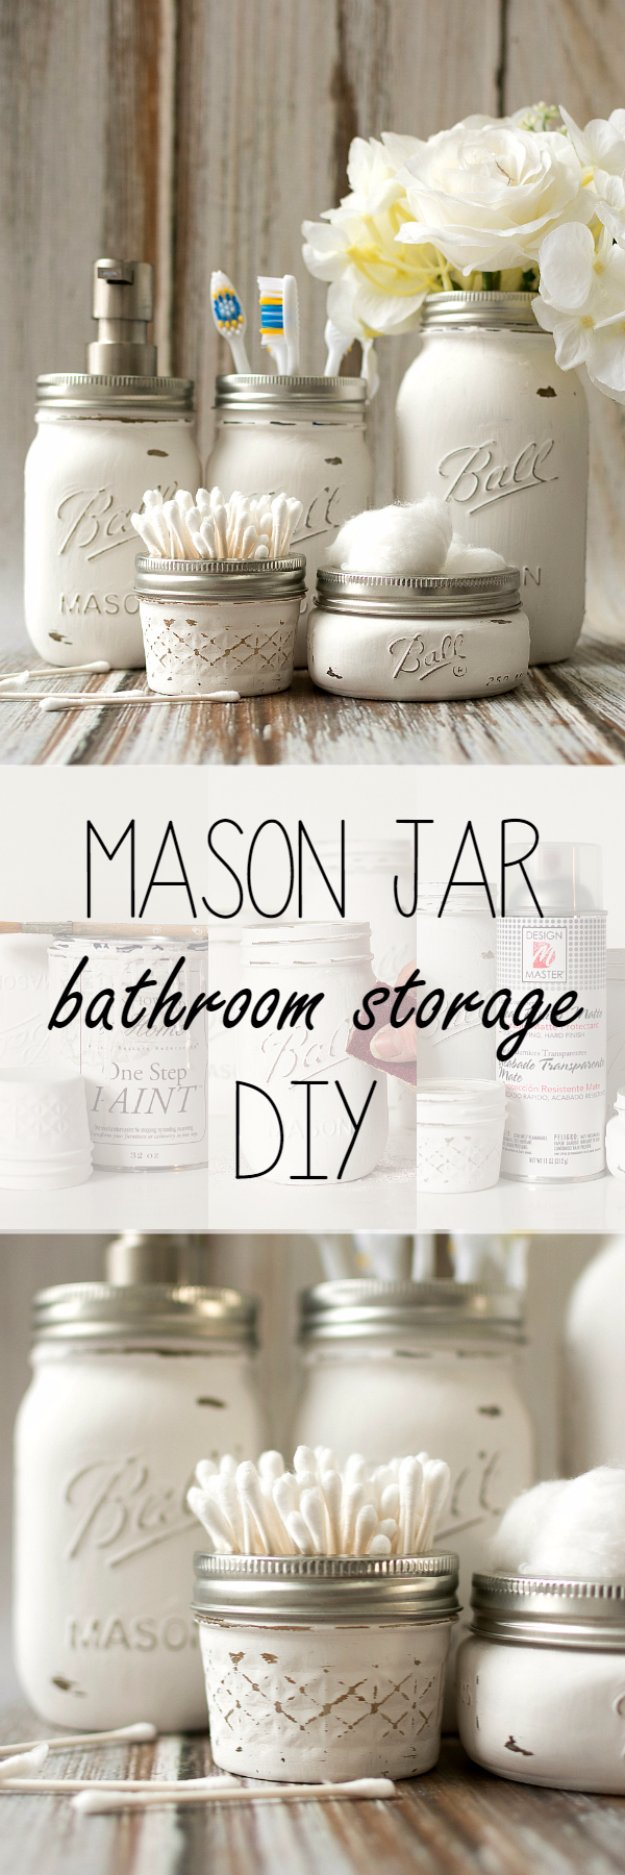 31 brilliant diy decor ideas for your bathroom diy joy for Bathroom ideas accessories